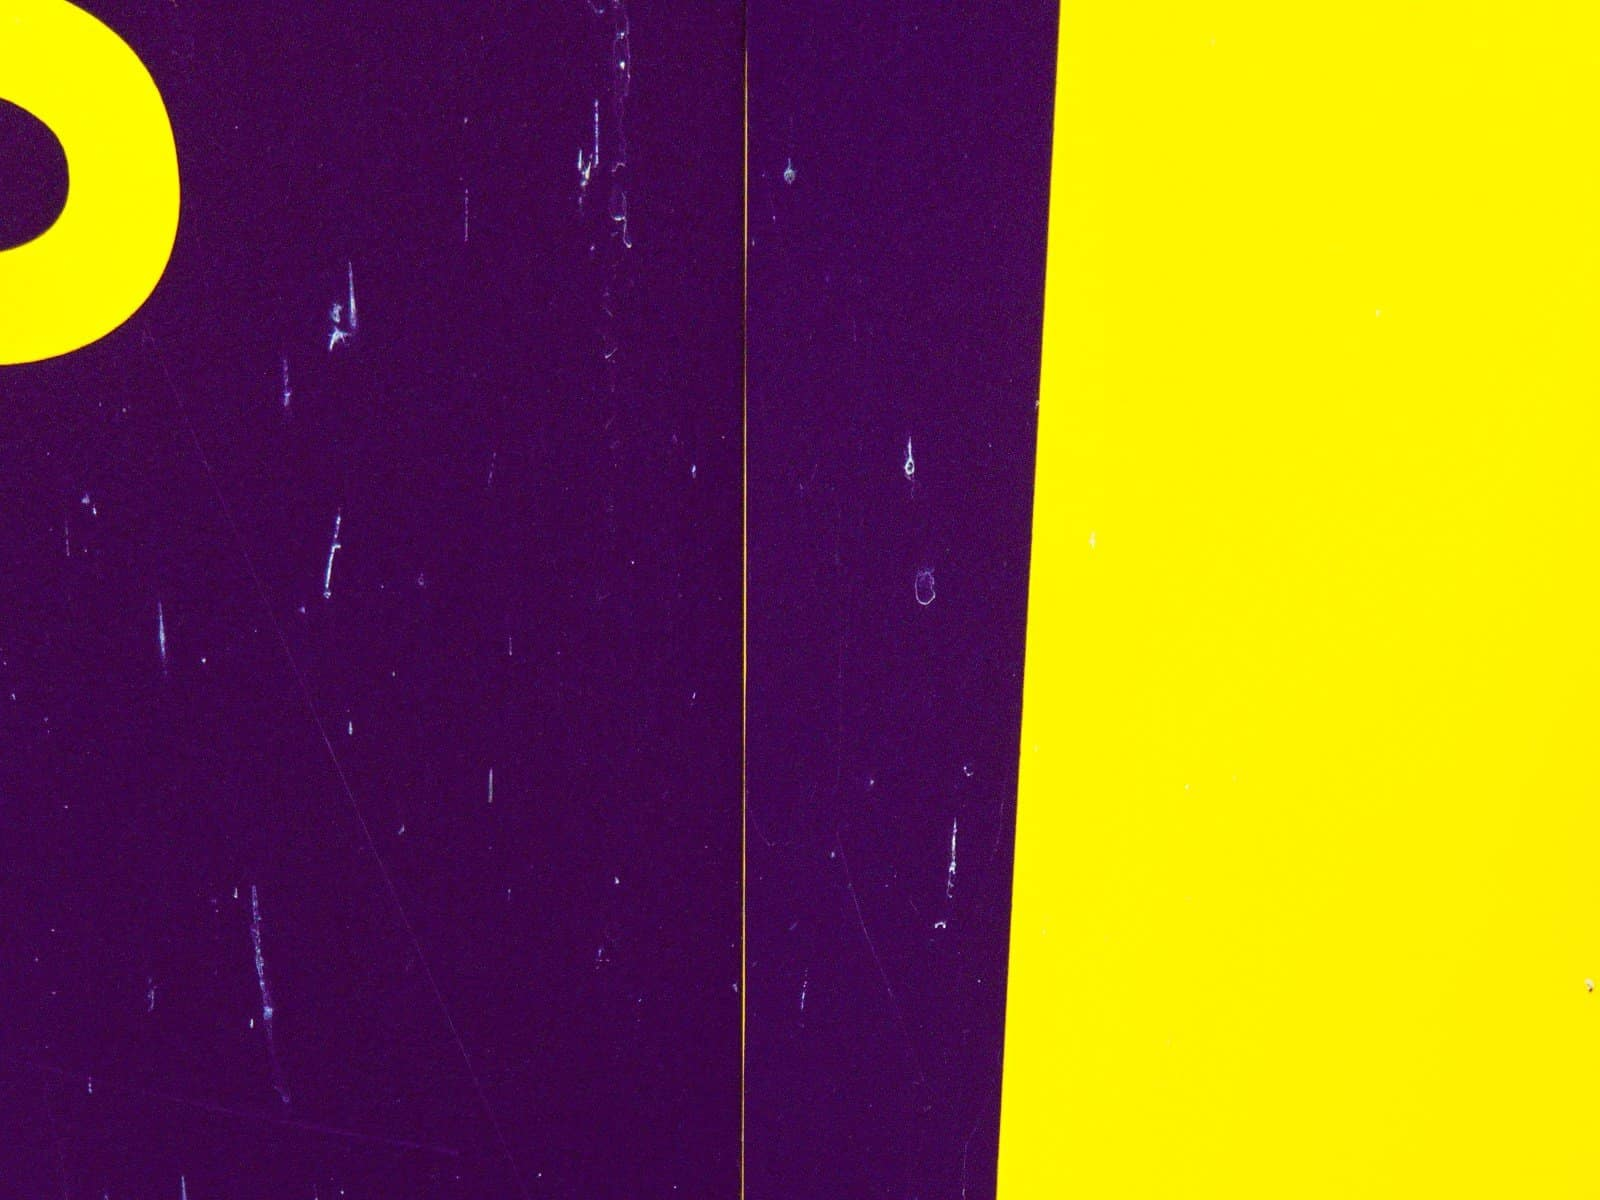 A close up of a hoarding: Purple, yellow and a worthwhile distraction